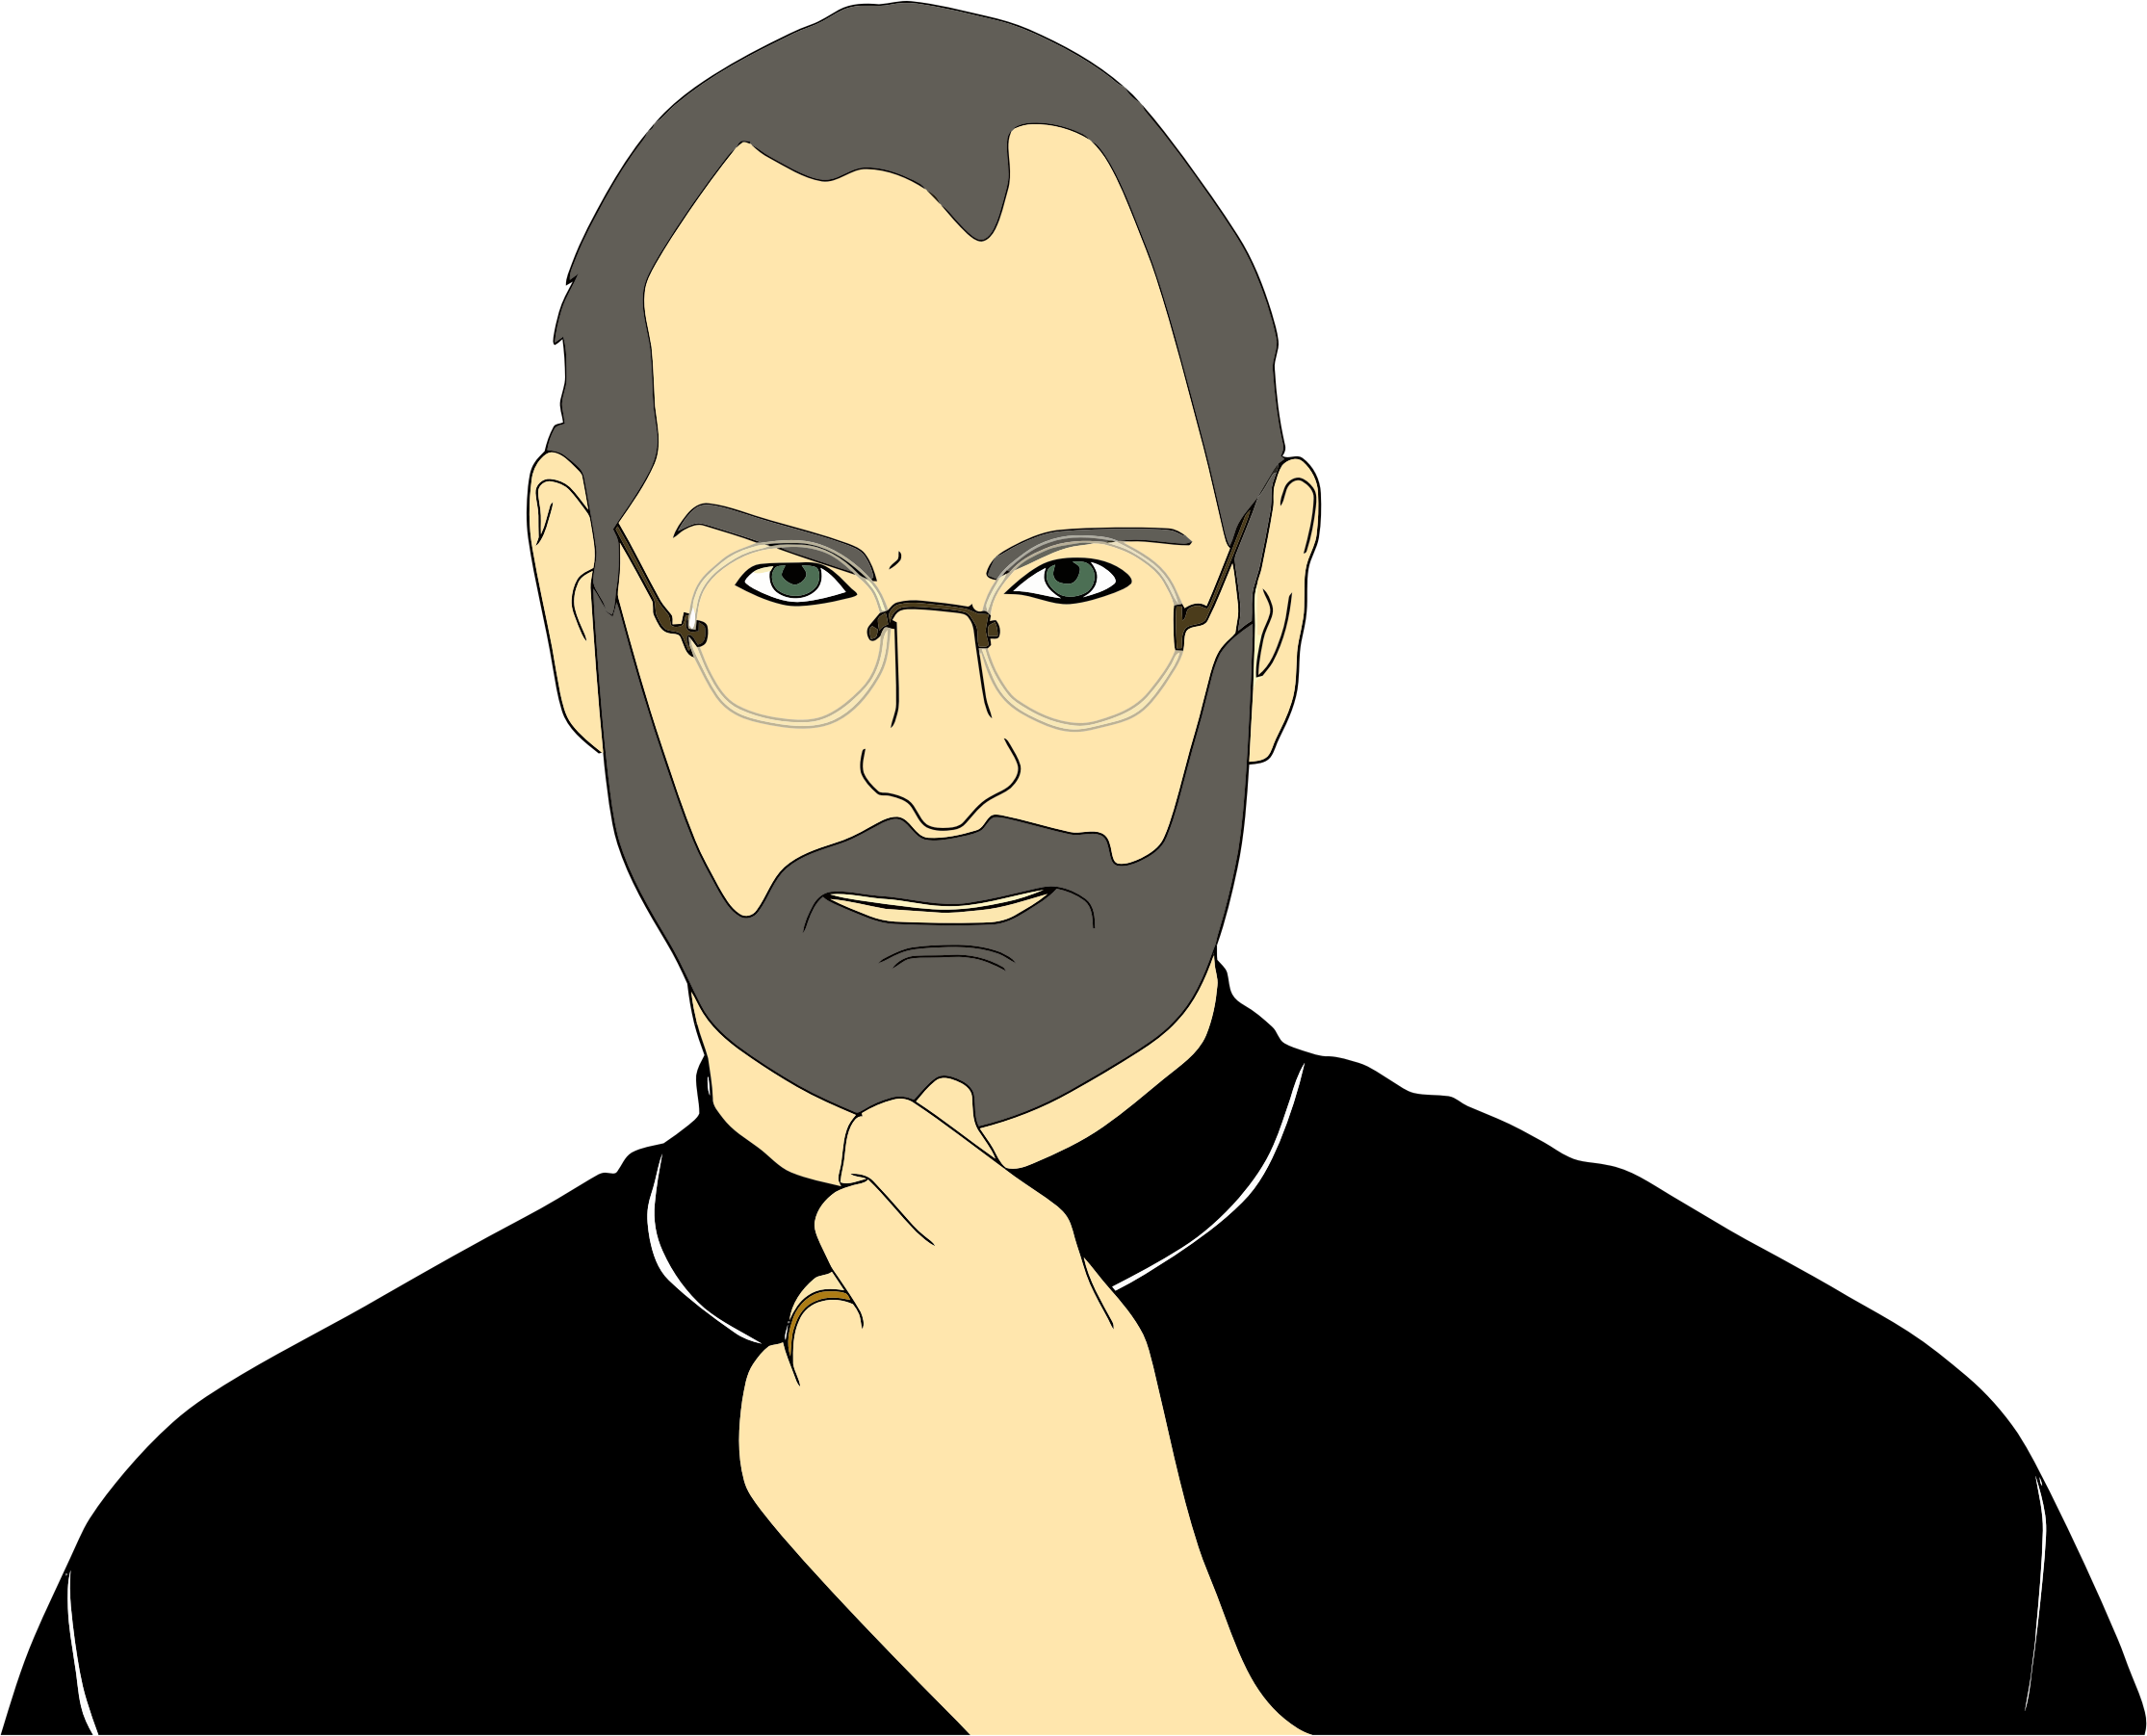 Steve jobs big image. Photo clipart portrait